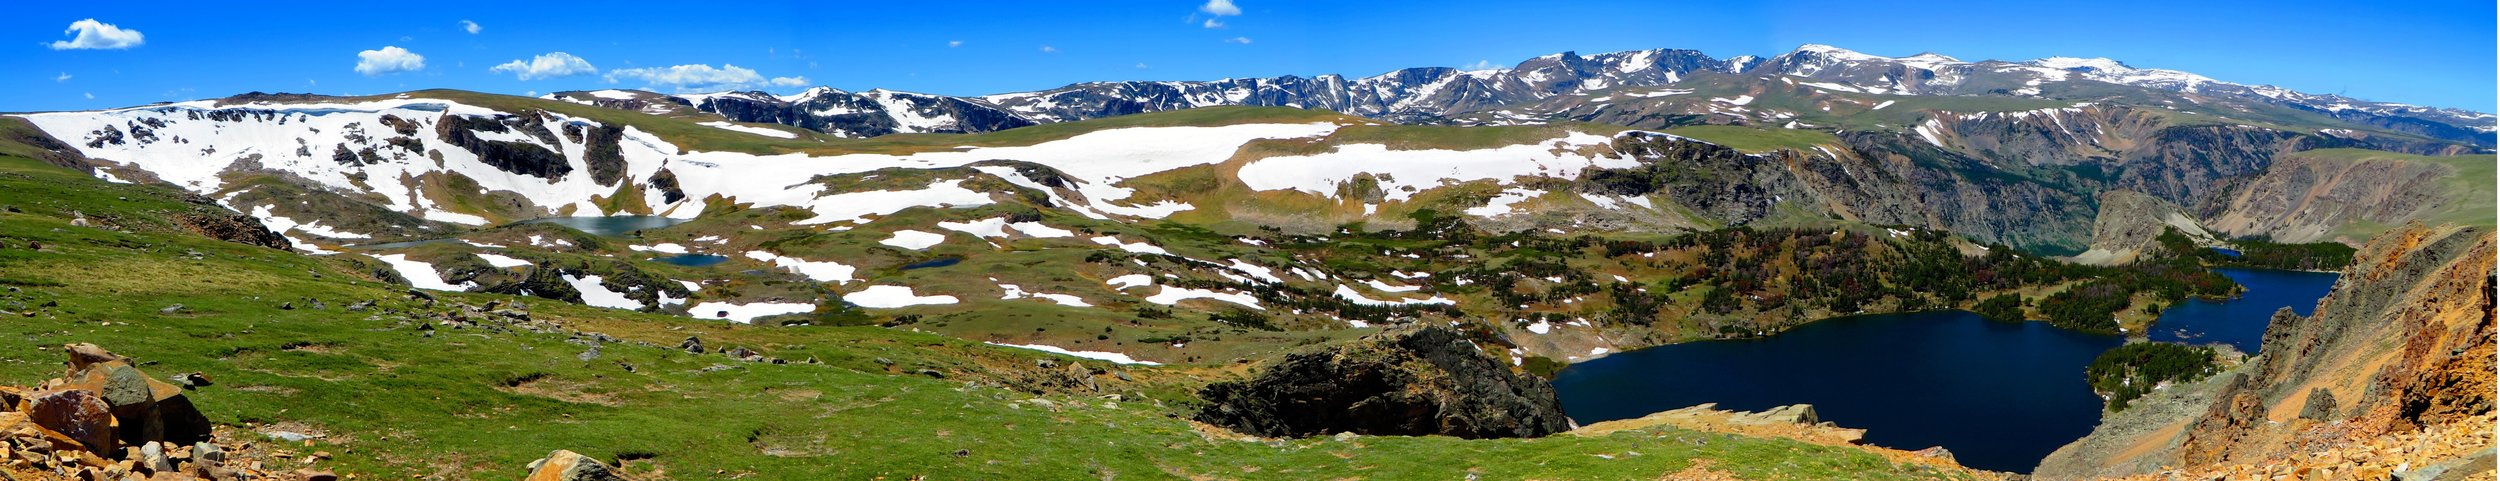 Twin-Lakes-Panorama-in-the-mountains-at-Dead-Indian-Pass.jpg